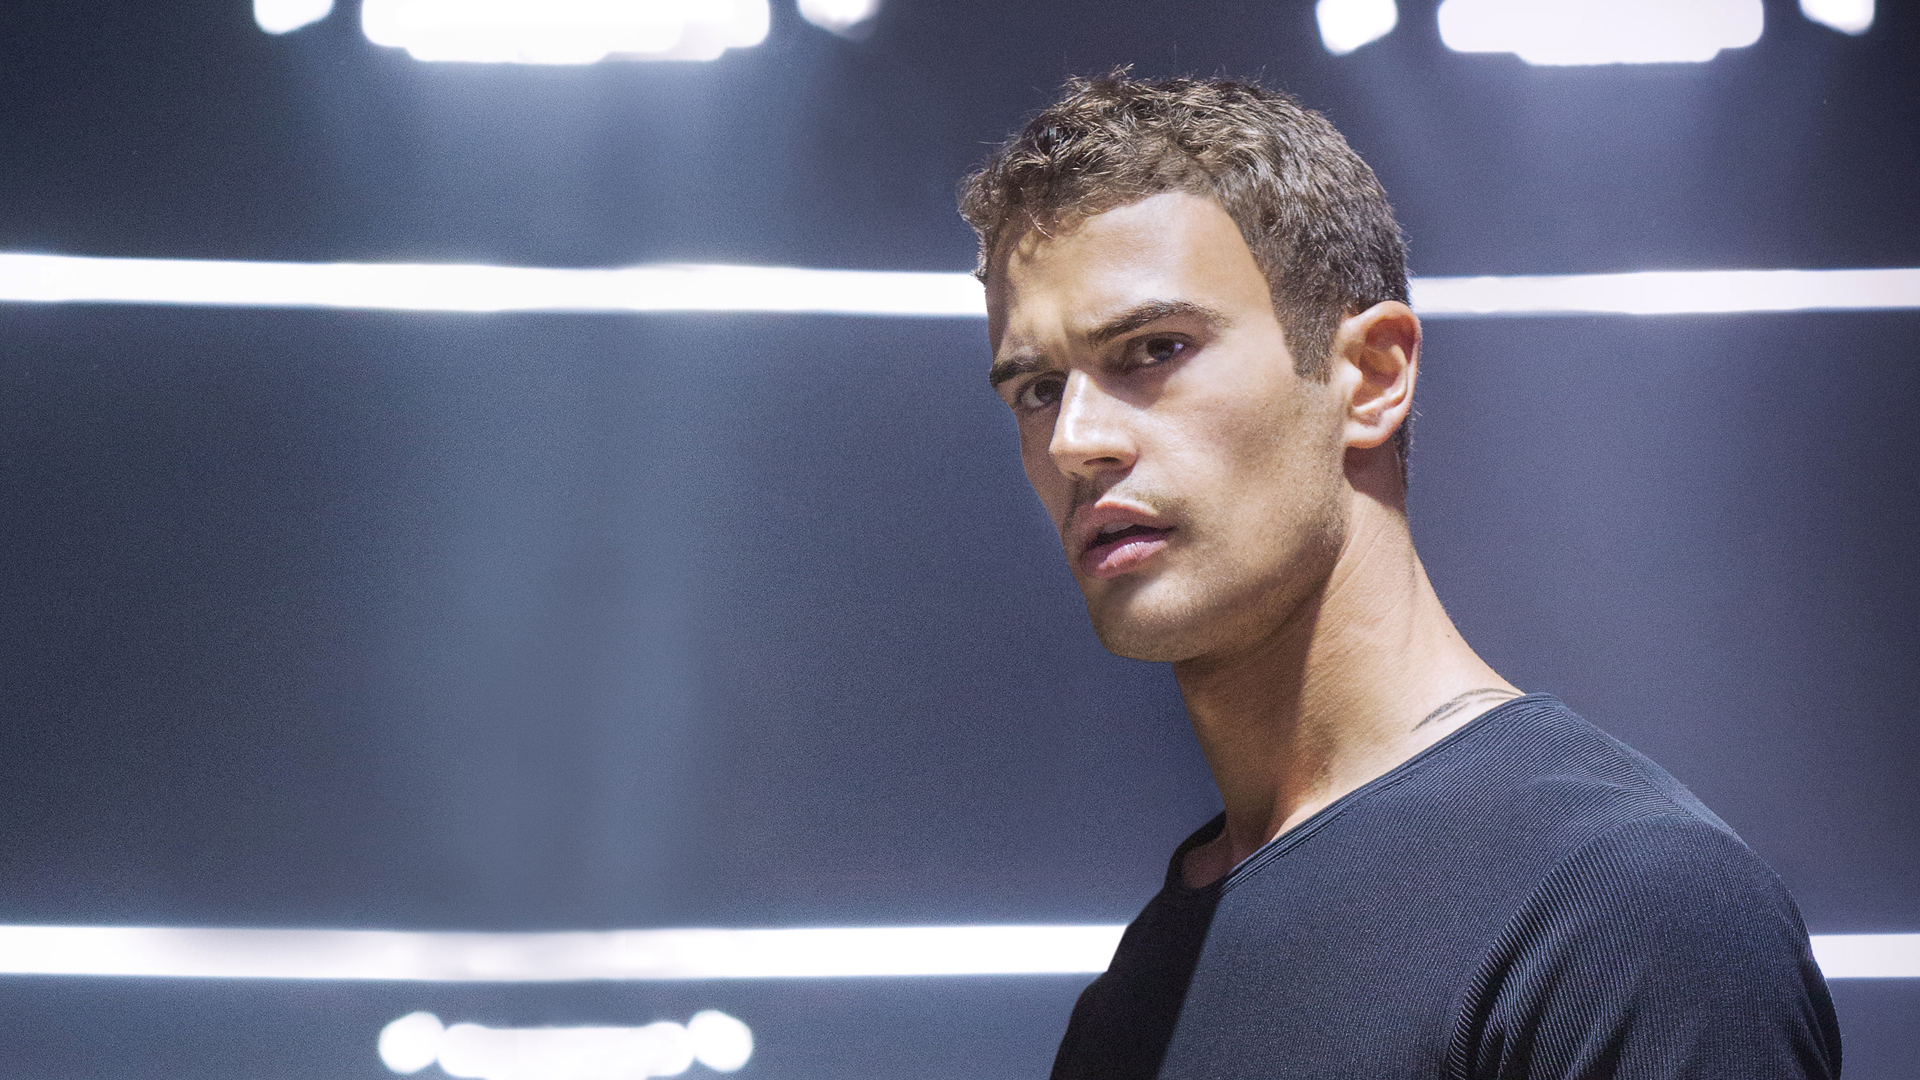 Download Theo James 37141 1920x1080 Px High Resolution Wallpaper